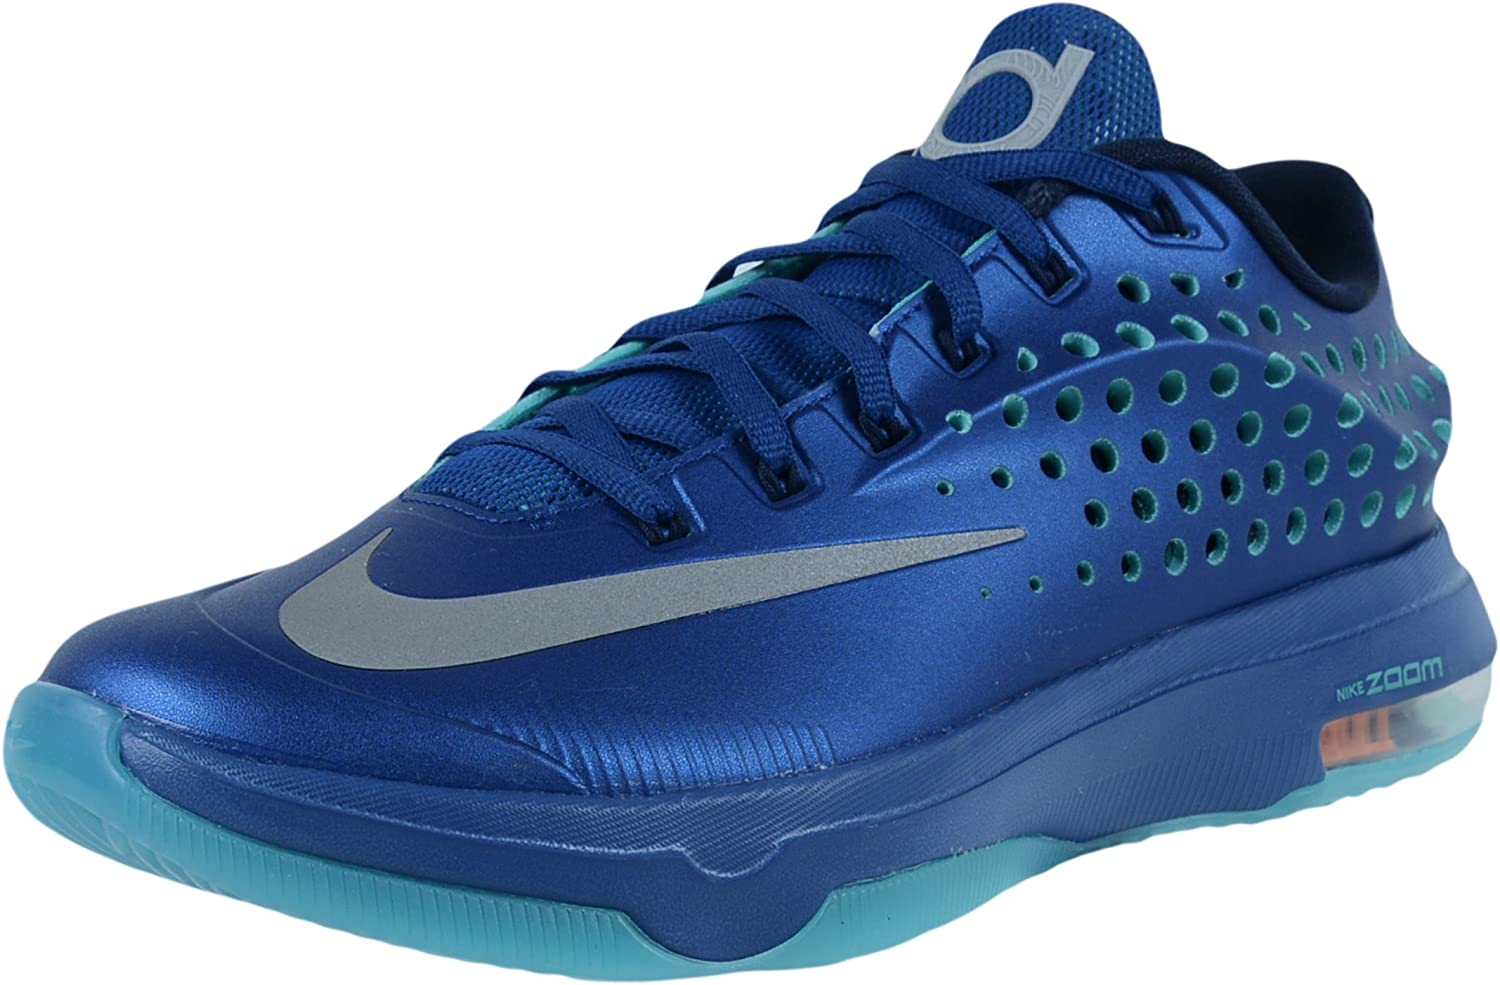 Nike KD VII Elite Men's Basketball Shoes